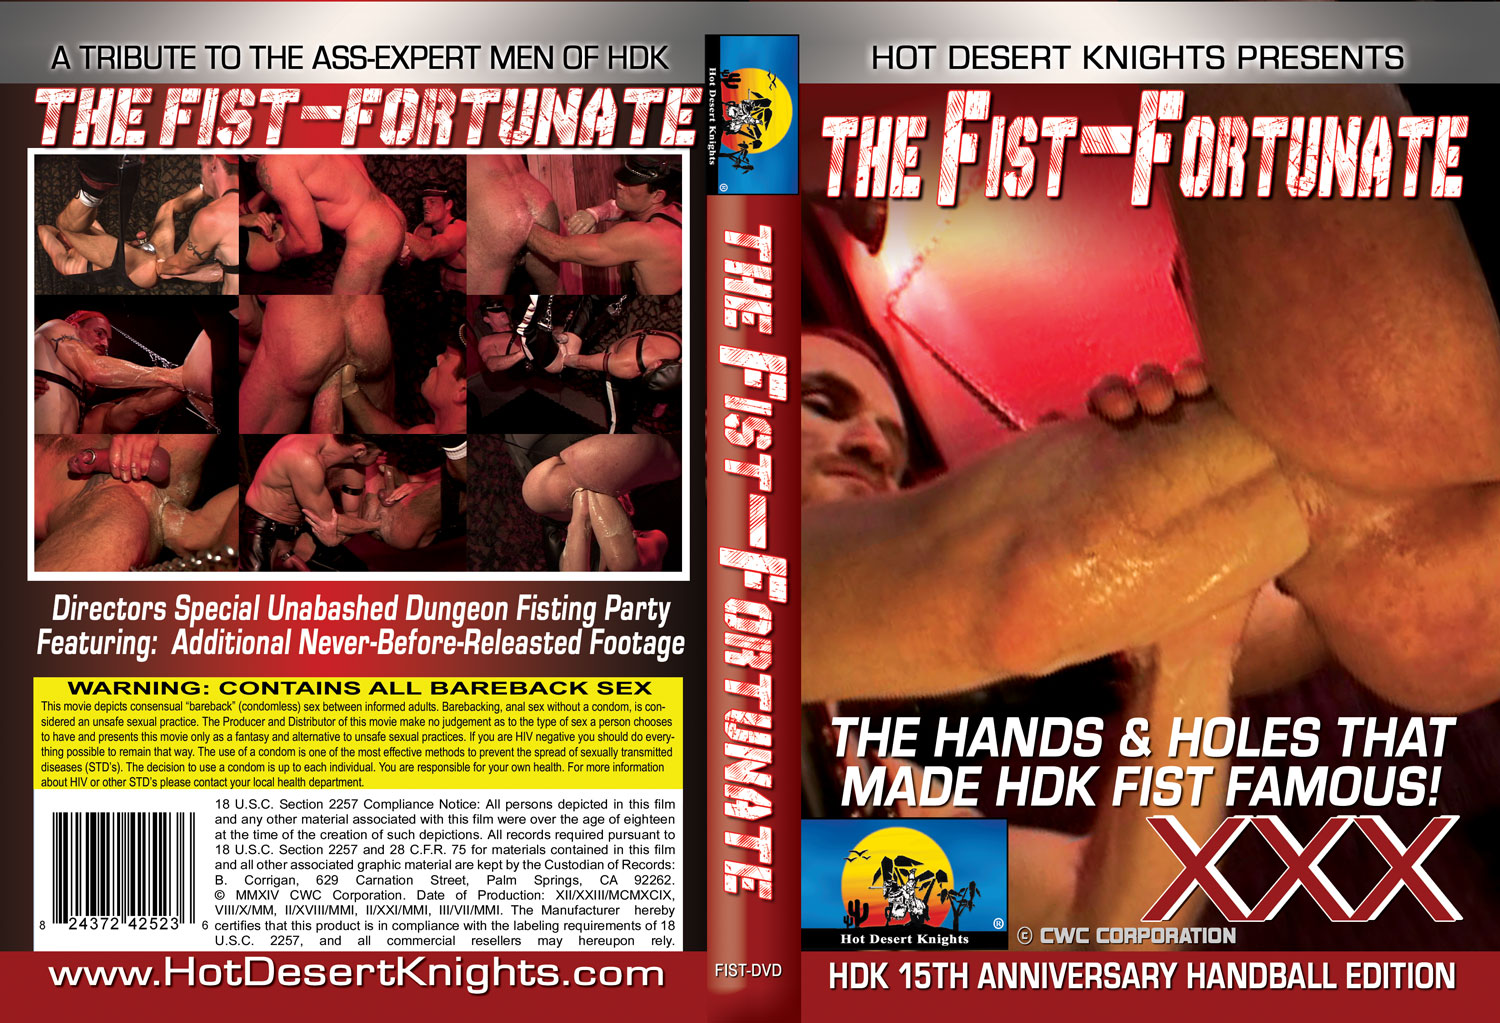 HDK Movie: THE FIST FORTUNATE